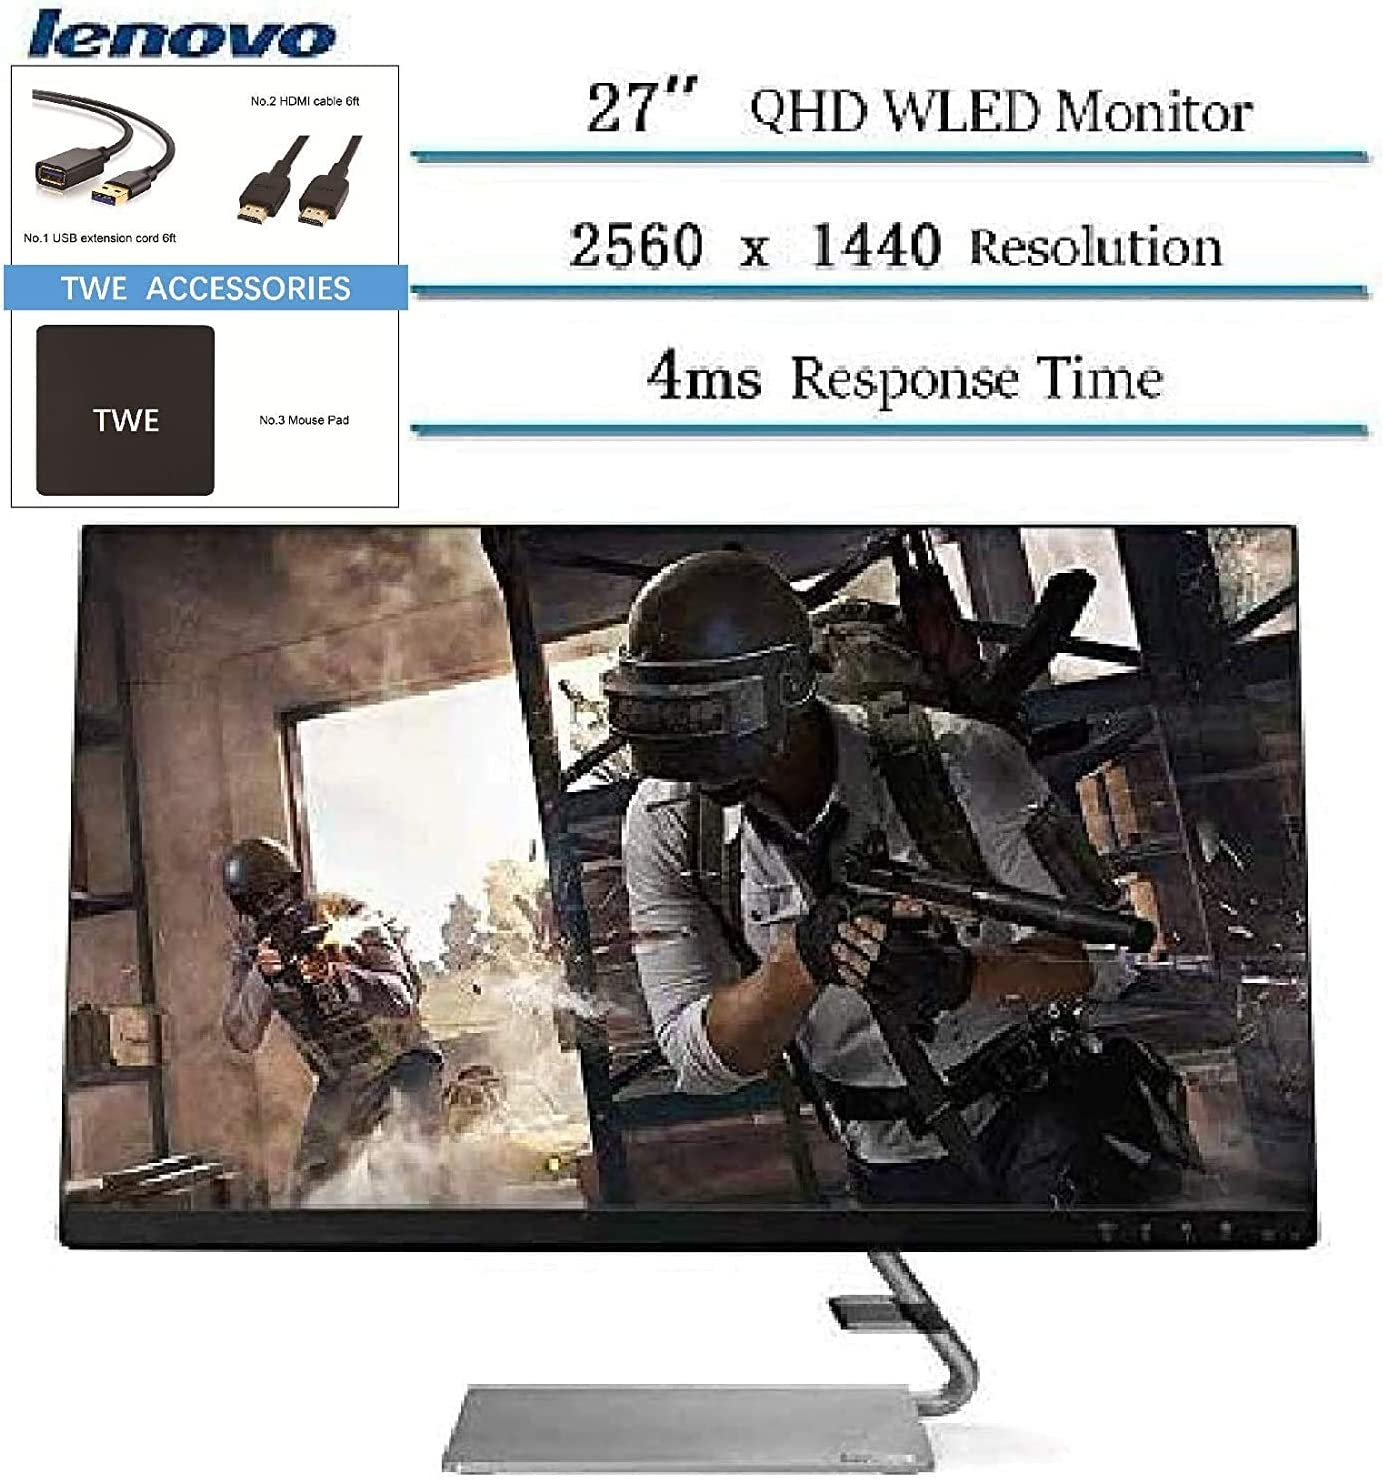 "Lenovo 27"" QHD 2560 x 1440 LED IPS FreeSync Gaming Monitor, 3W Built-in Speakers, 4ms Response Time, 300 cd/m², HDMI, 1000:1 Contrast Ratio, TWE Accessory Bundle"